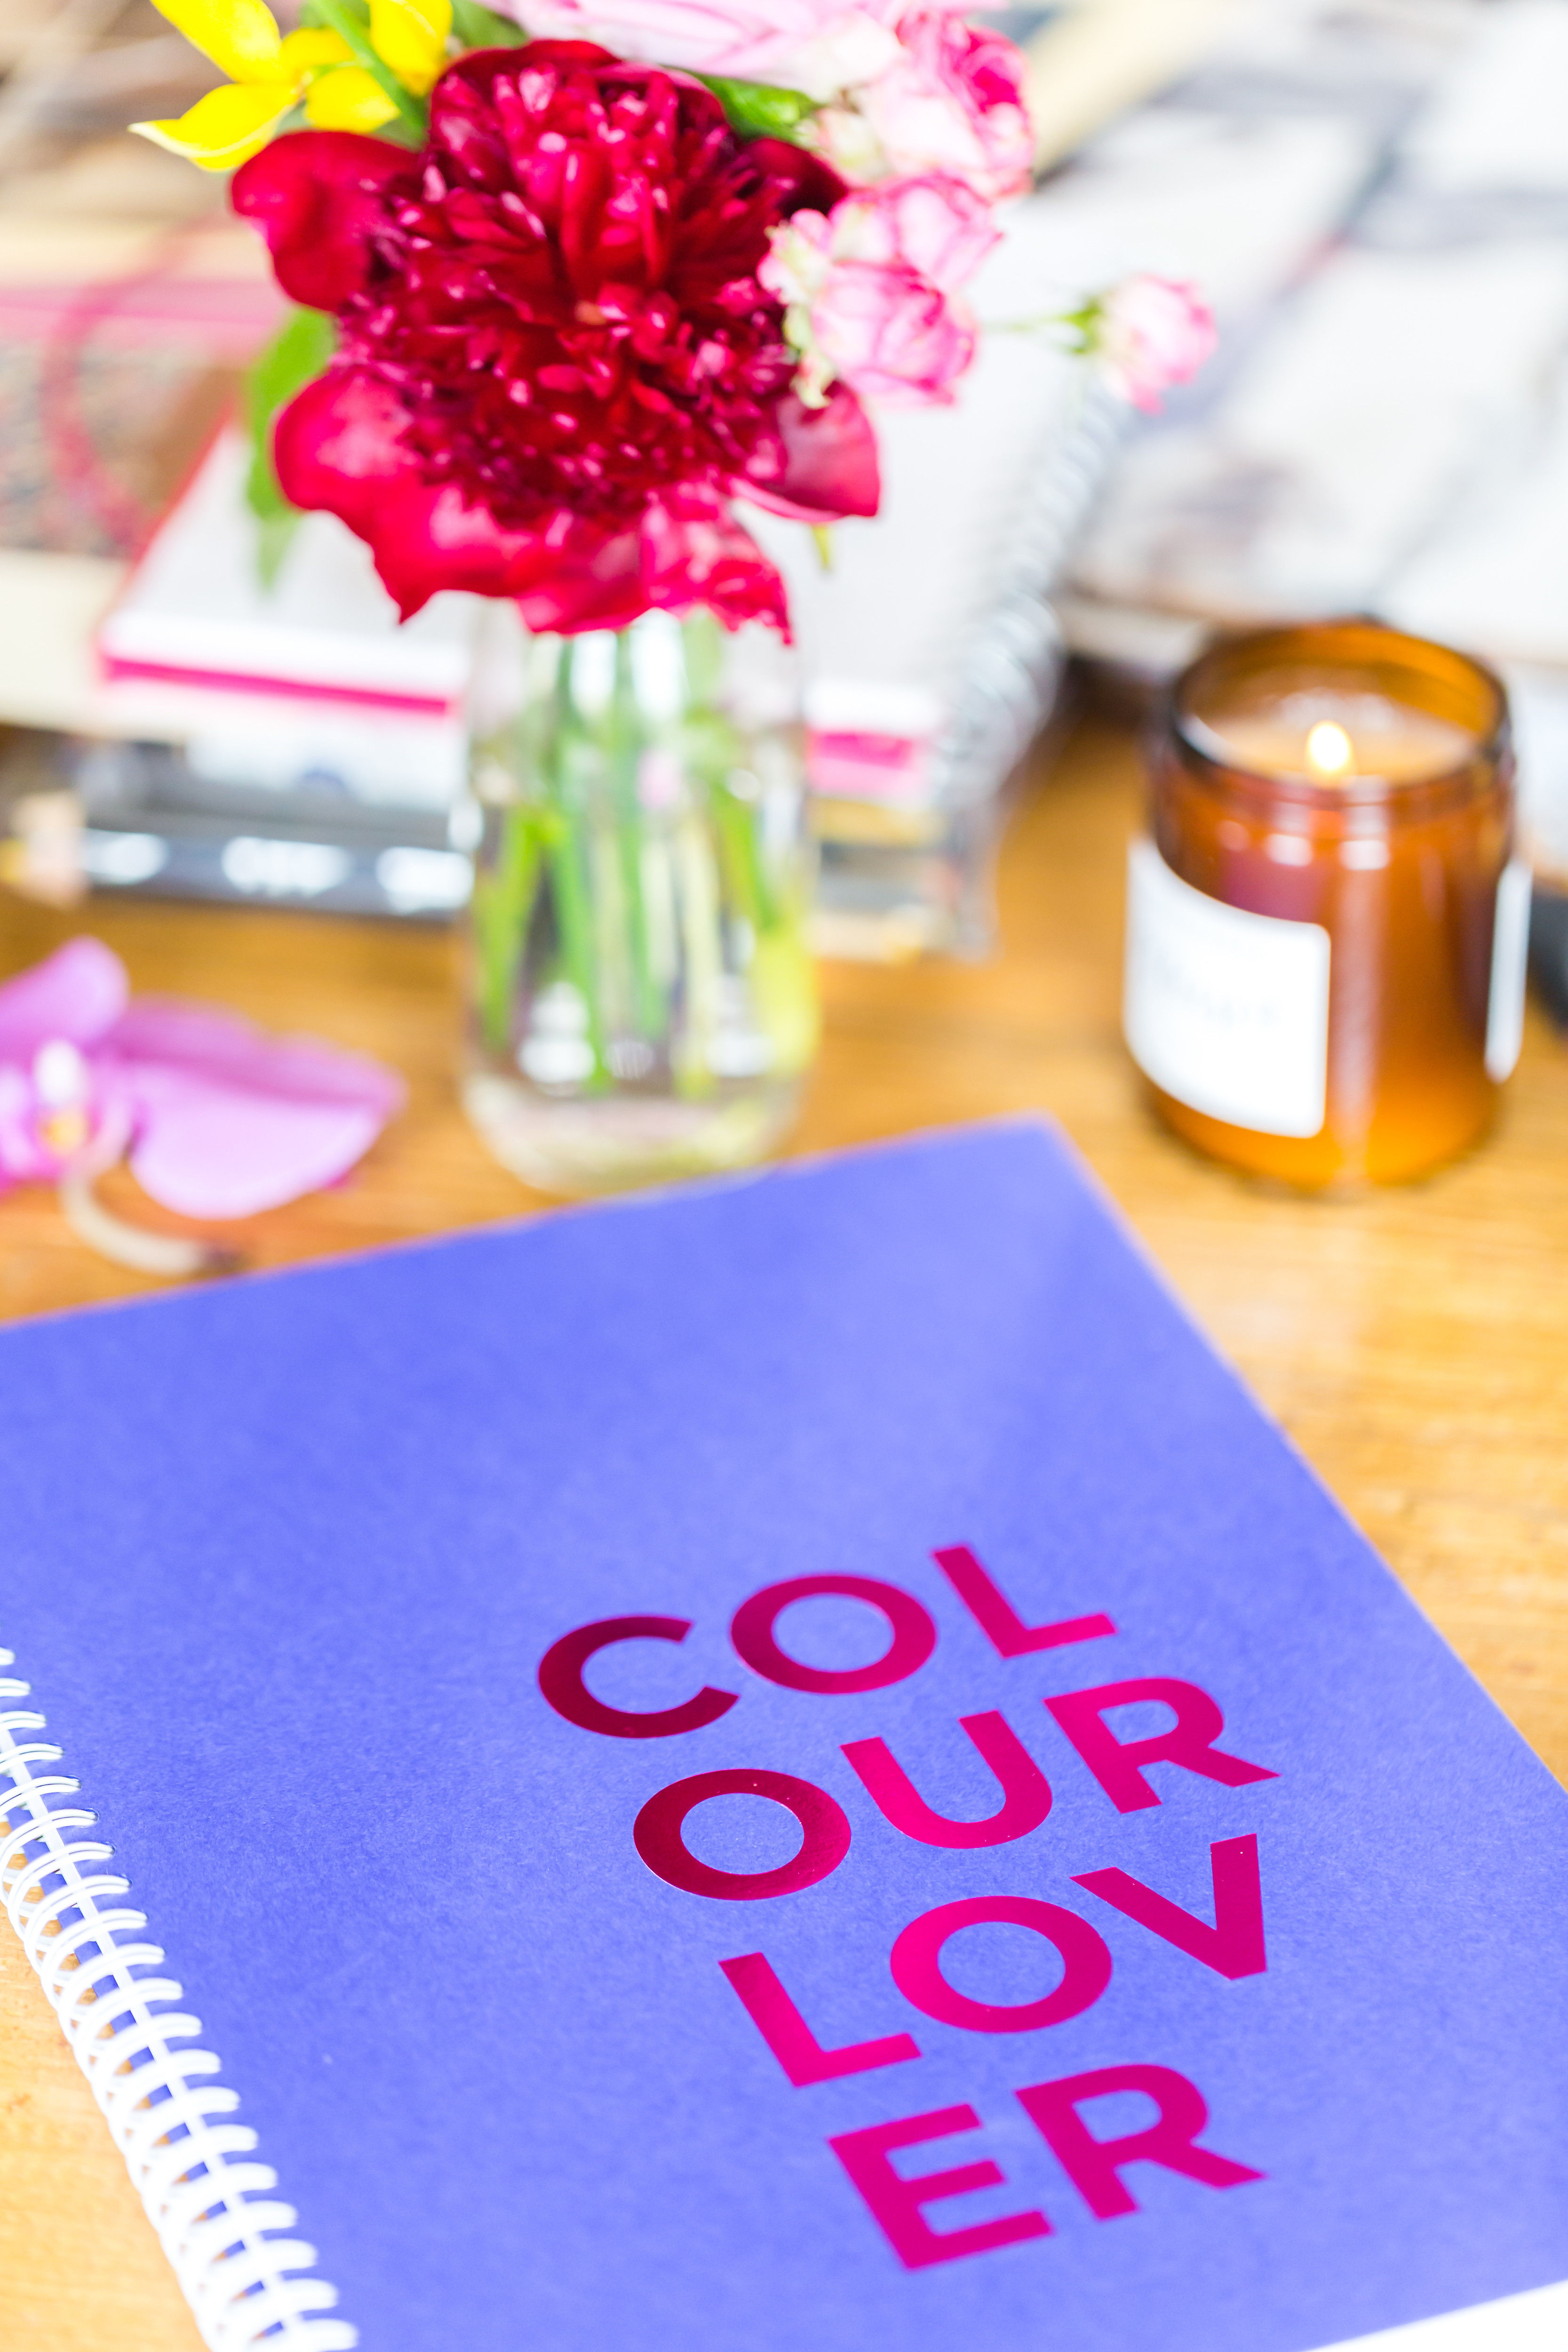 The limited edition Colour Lovers sketch book